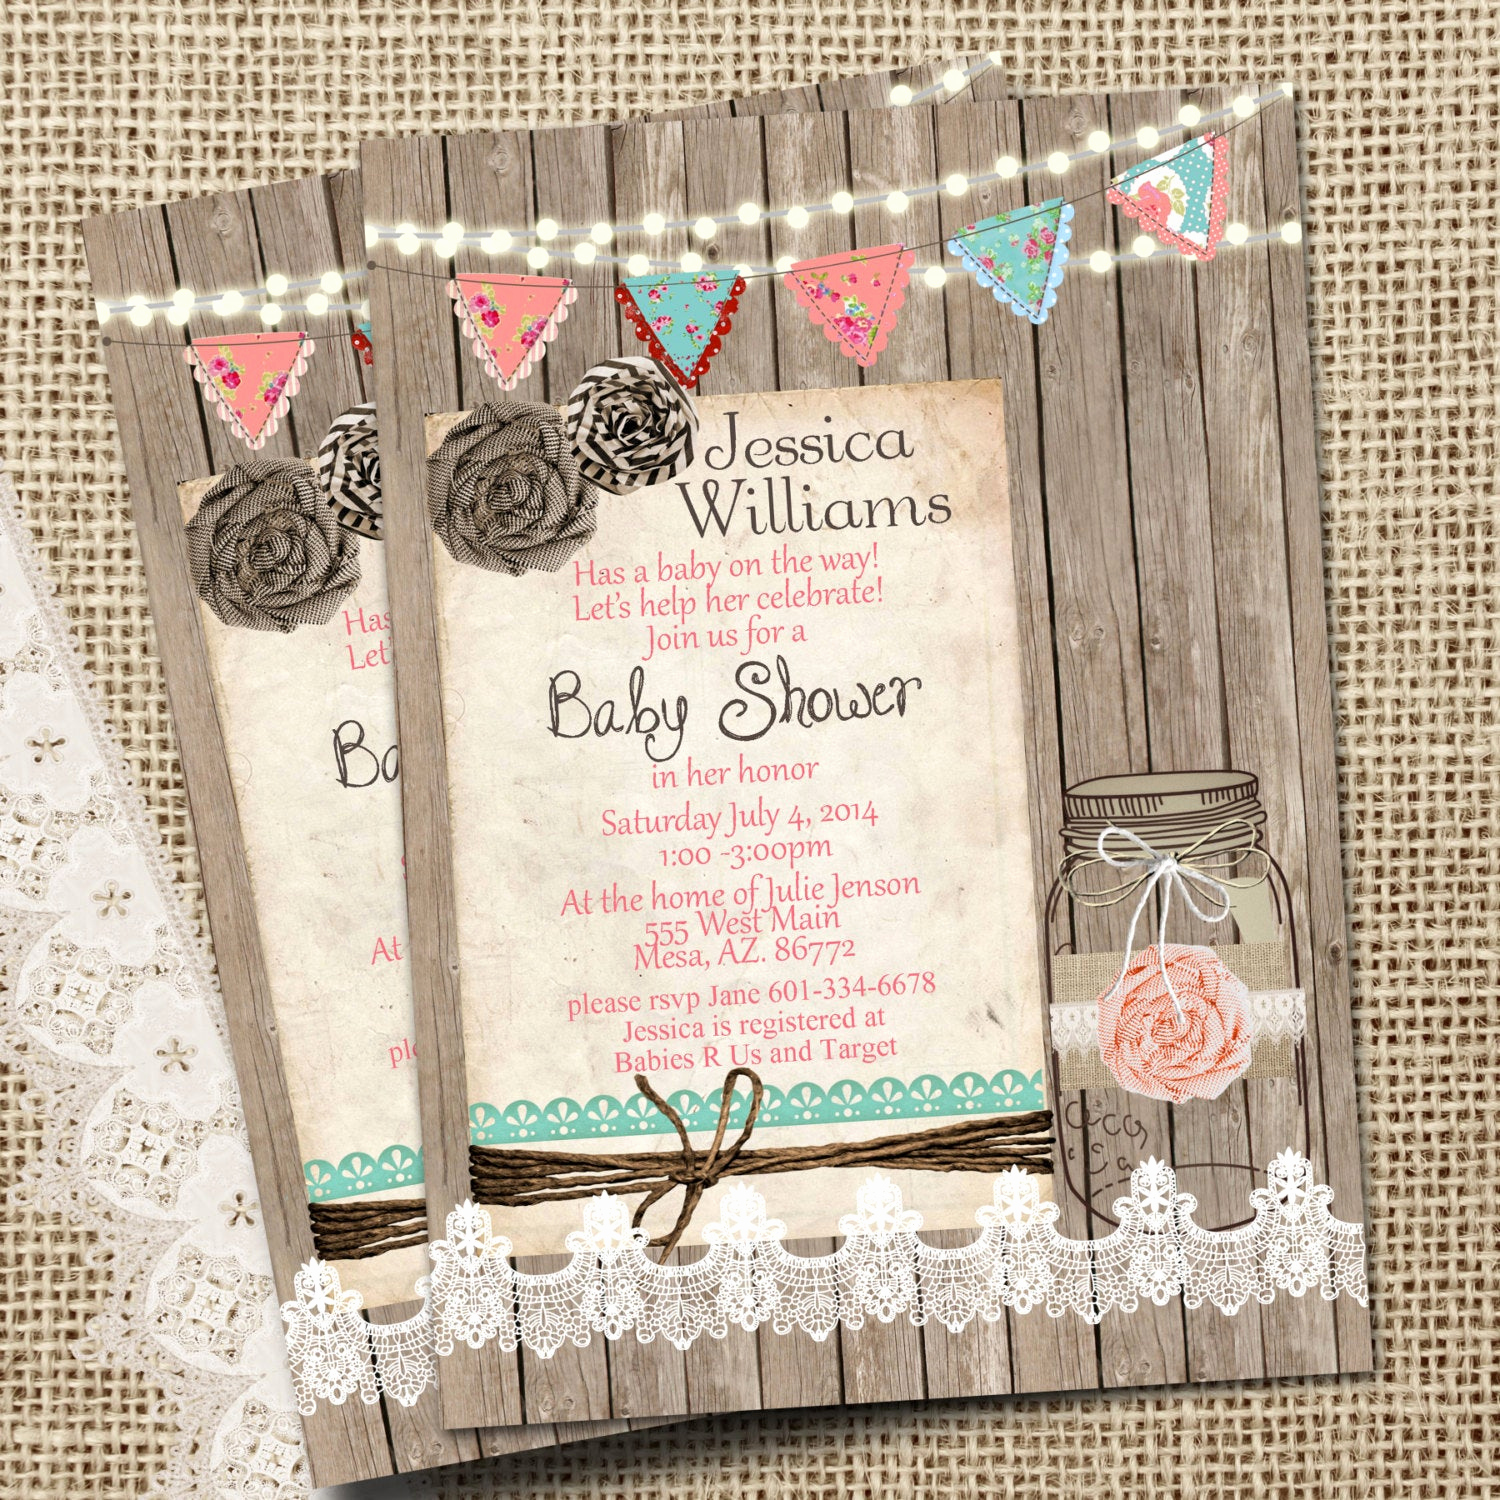 Rustic Baby Shower Invitation Luxury Rustic Mason Jar Burlap and Lace Baby Shower Invitation